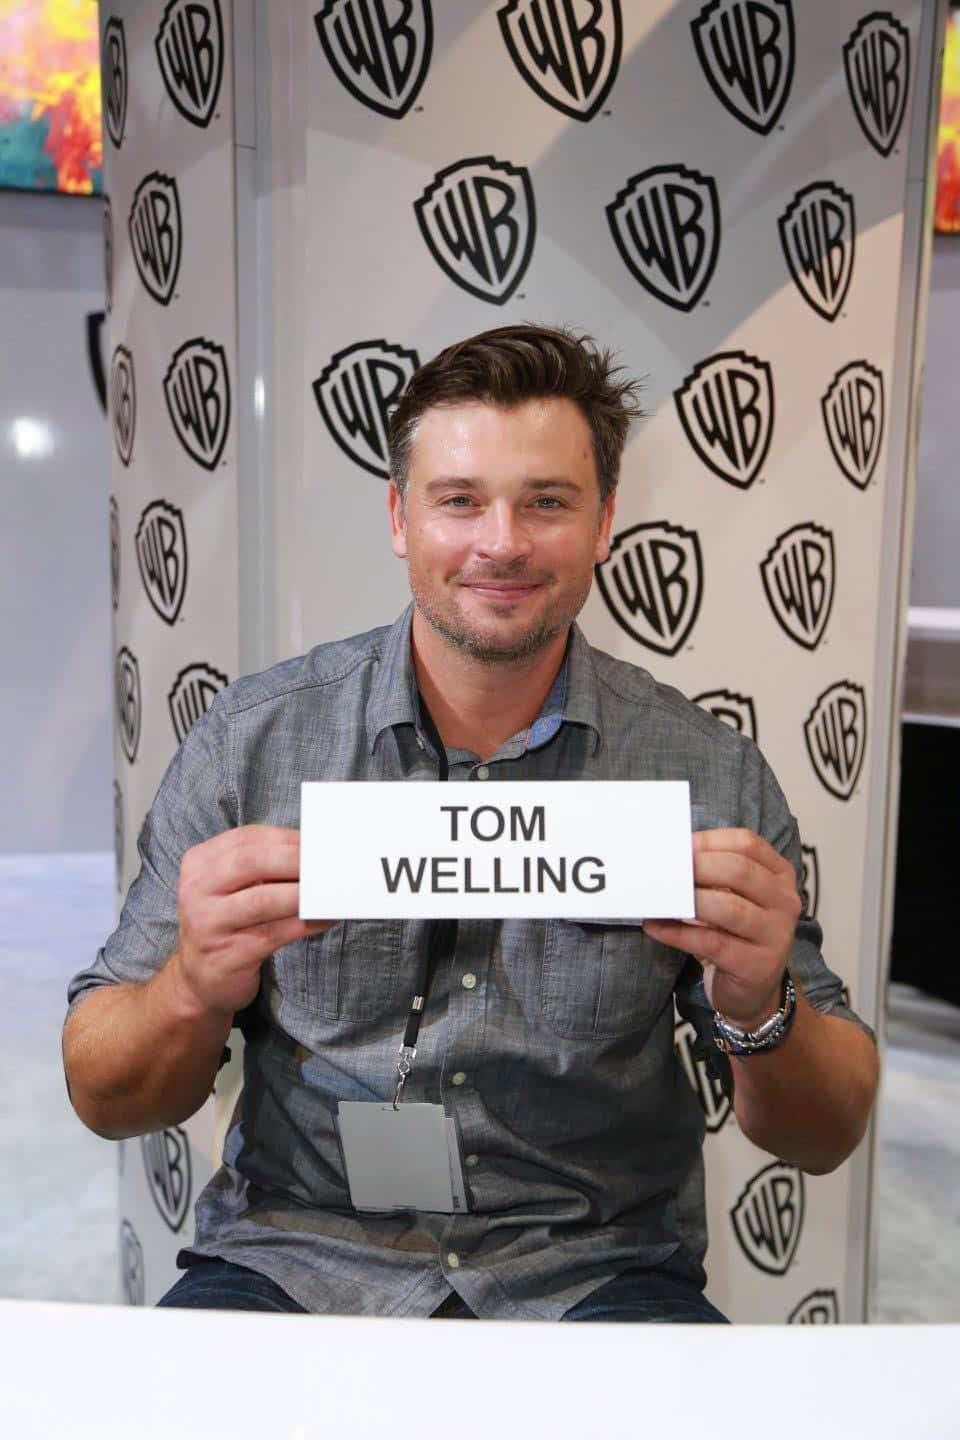 LUCIFER star TOM WELLING makes a visit to the Warner Bros. booth at Comic-Con 2017 on Saturday, July 22. #WBSDCC (© 2017 WBEI. All Rights Reserved